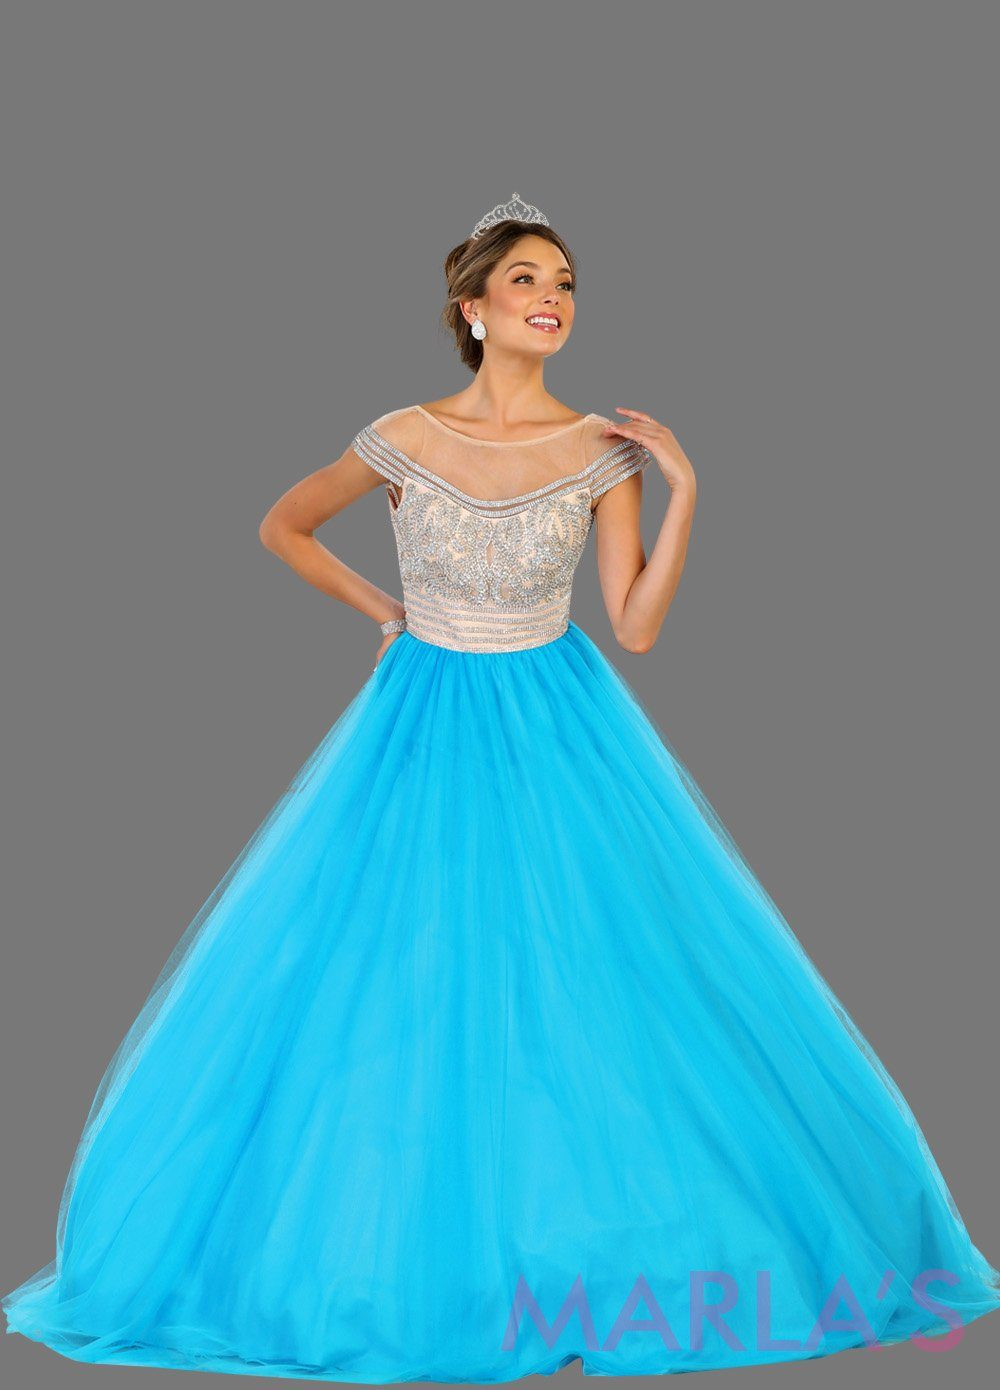 Attractive Dress For An Engagement Party Pattern - All Wedding ...